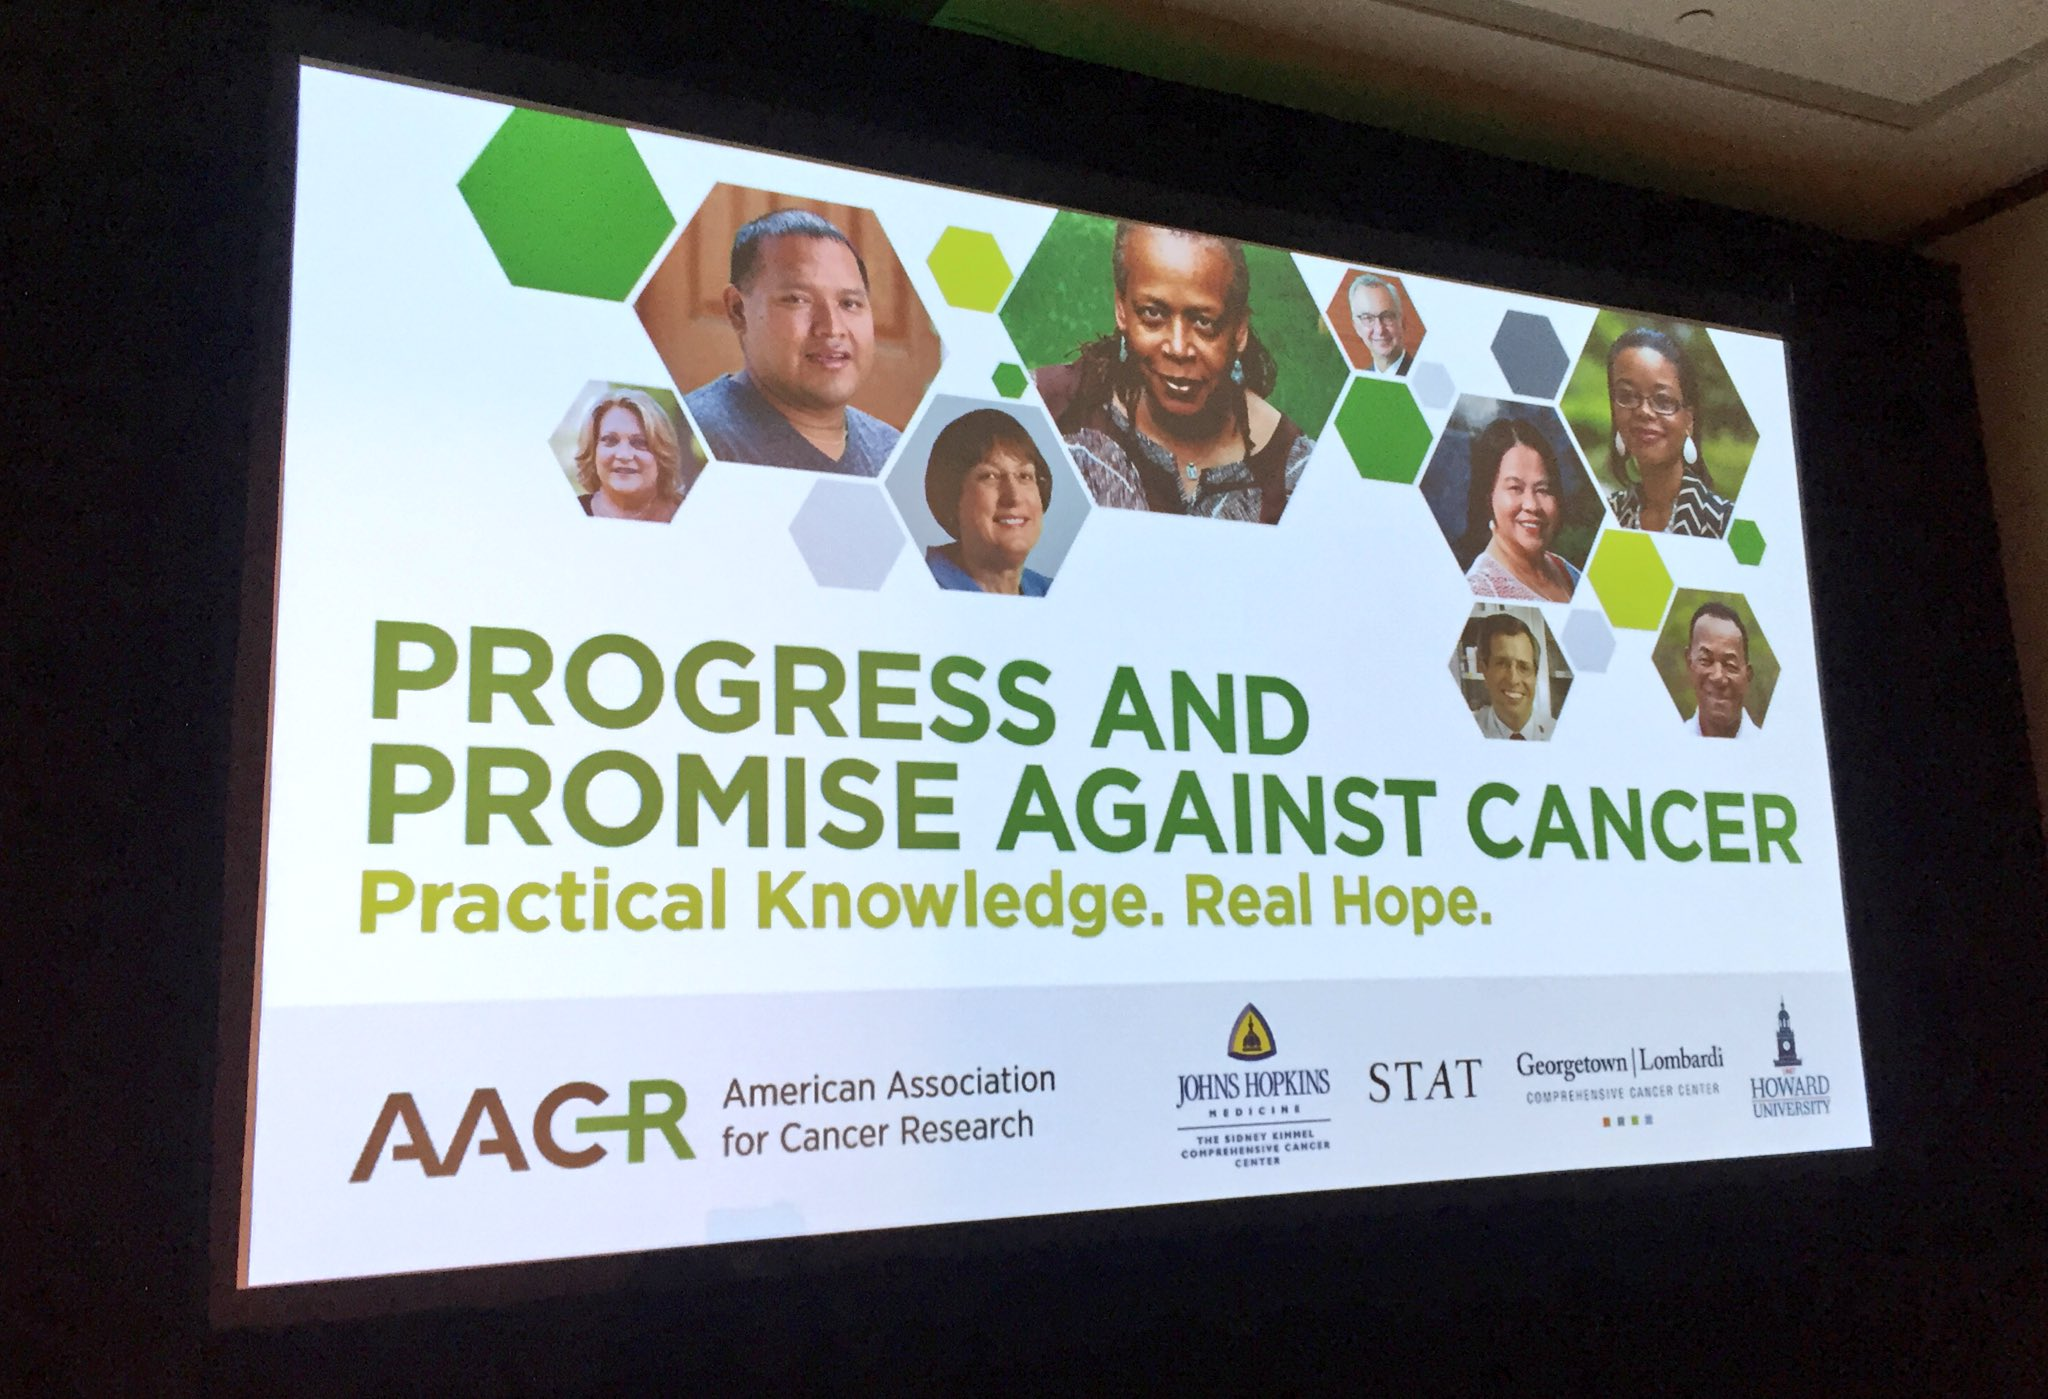 The Progress and Promise Against Cancer community event is about to begin. #AACRTalksCancer #AACR17 https://t.co/DyH971IzGF